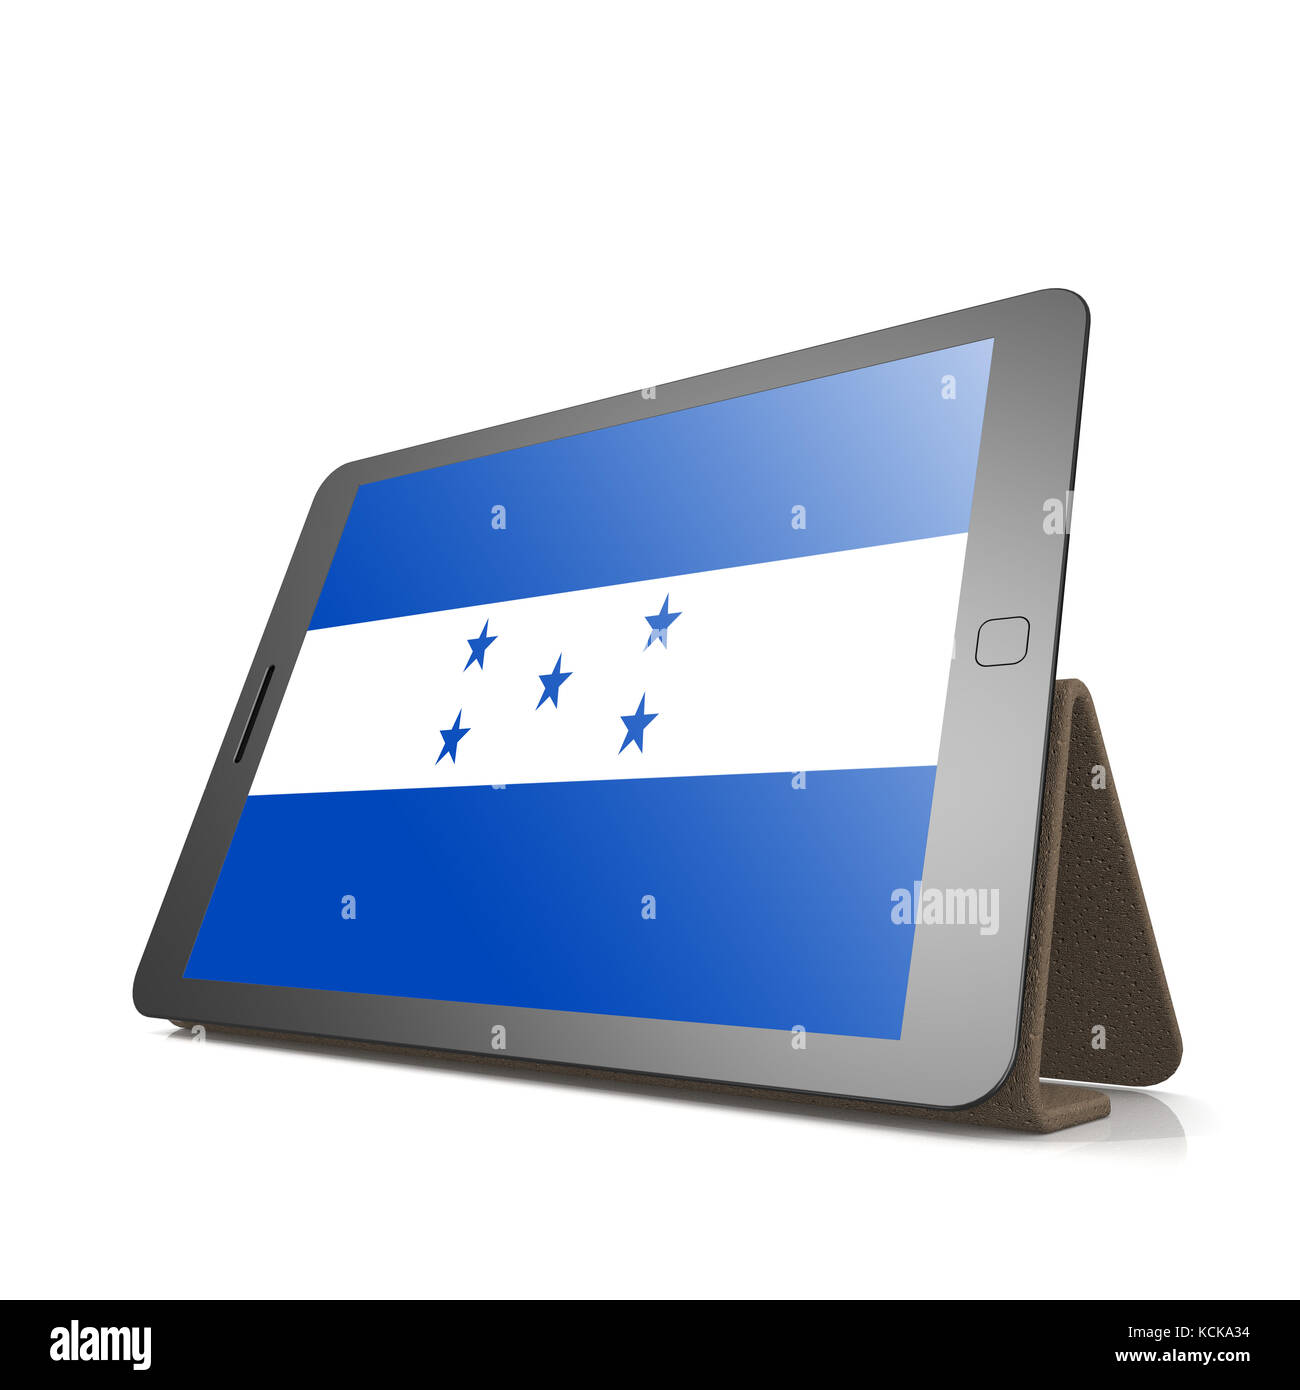 Tablet with Honduras flag image with hi-res rendered artwork that could be used for any graphic design. Stock Photo